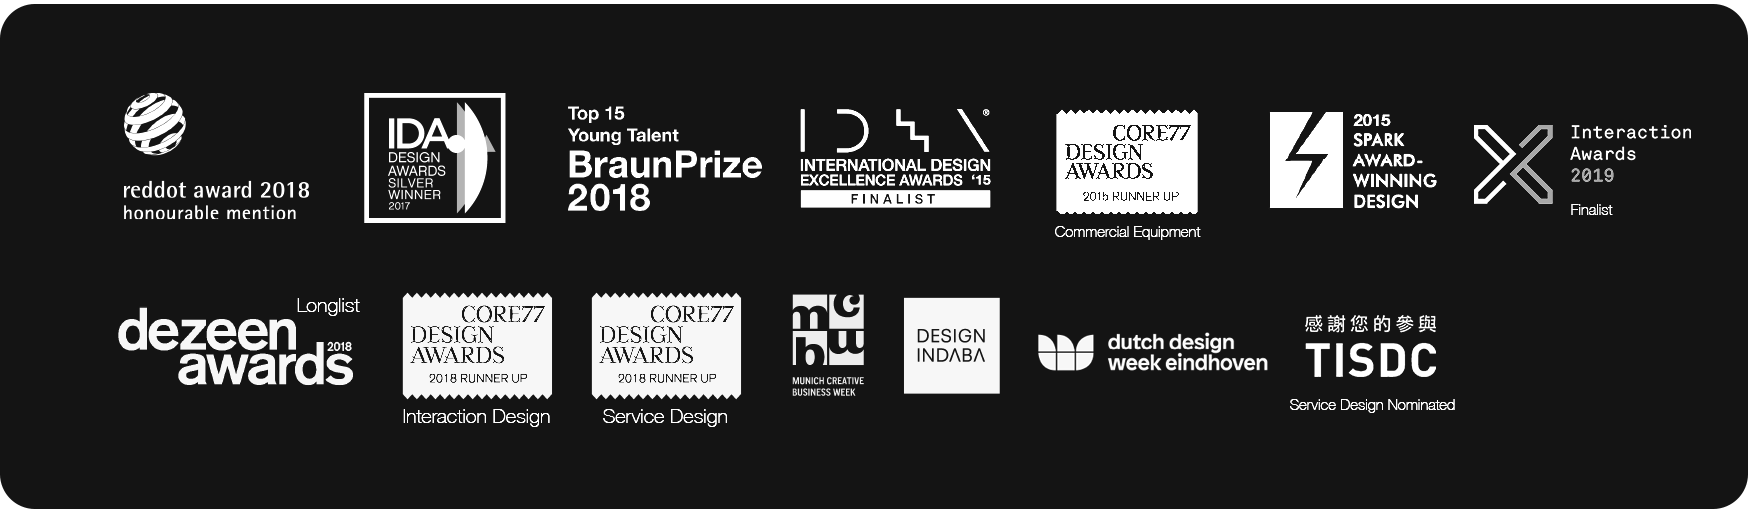 Awards Summary logo overview.png